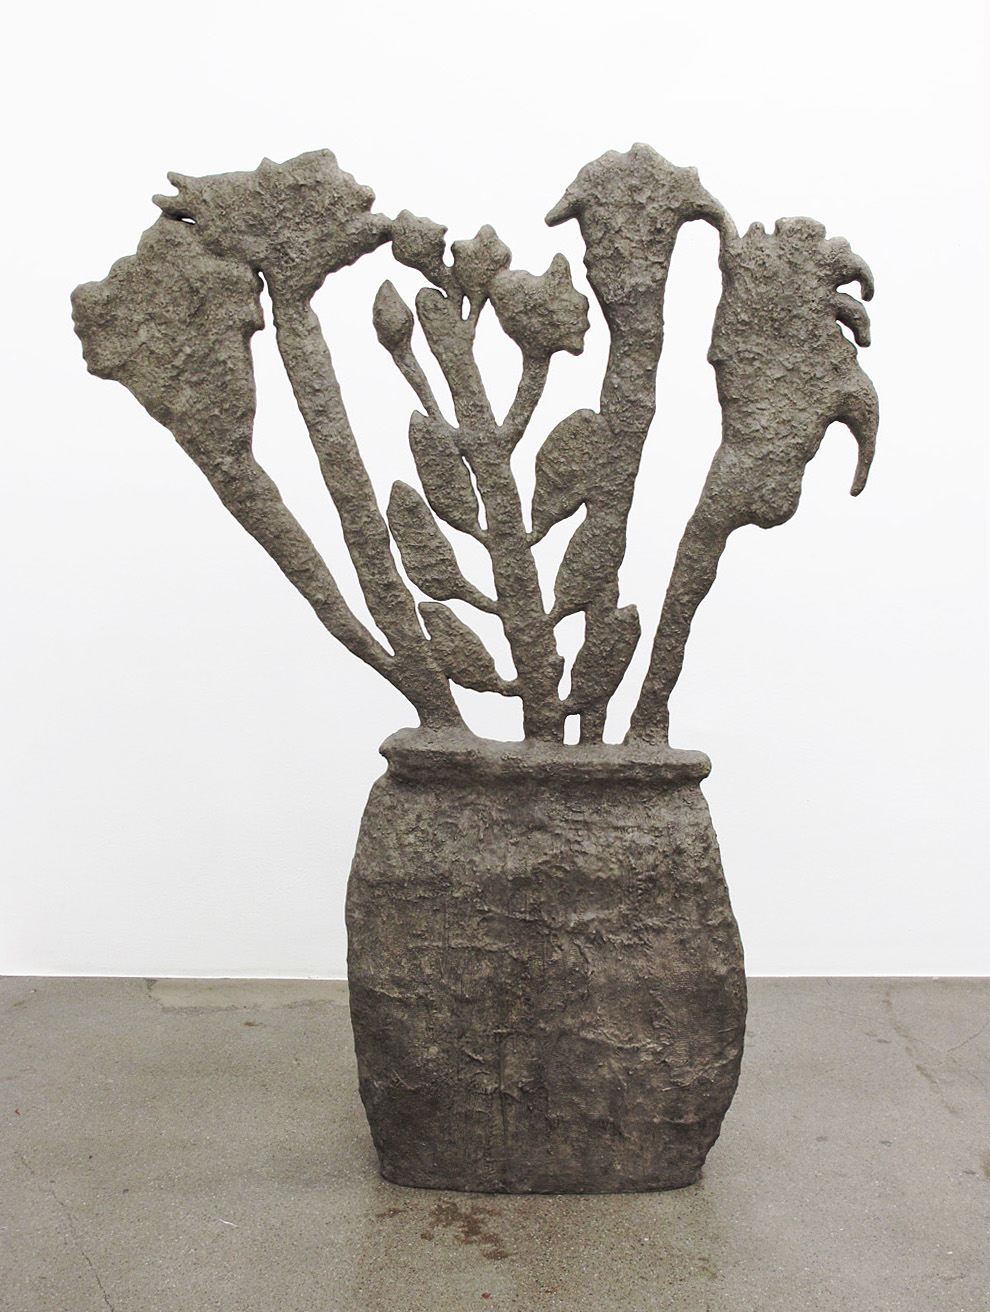 Donald Baechler   Flowers   2009  bronze  72.5 x 54 x 8 in / 184 x 137 x 20 cm  Edition of 8 + 2 APs